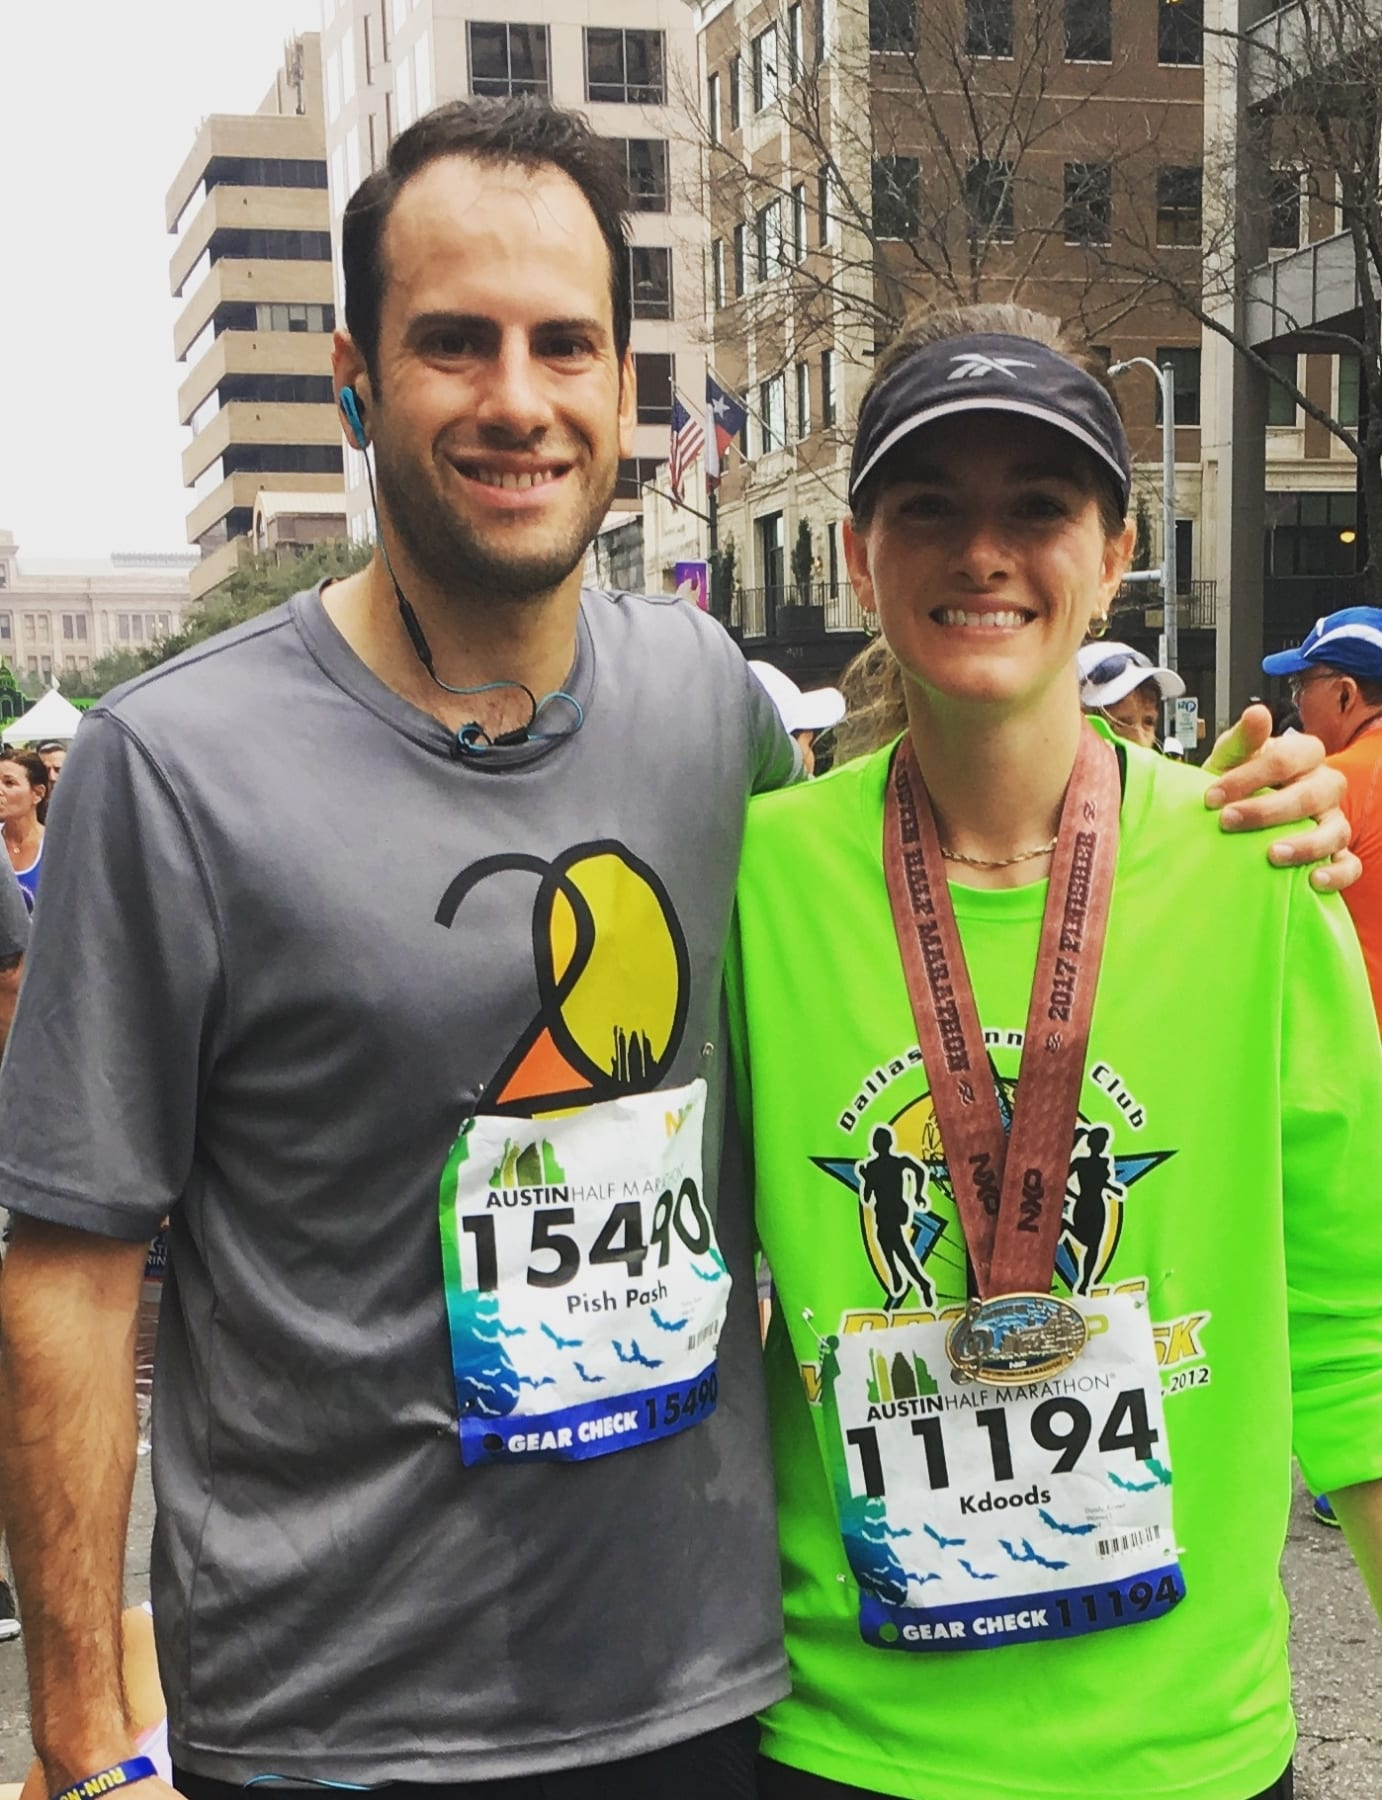 Kirsten met the love of her life on Valentine's Day at the Austin Half Marathon.